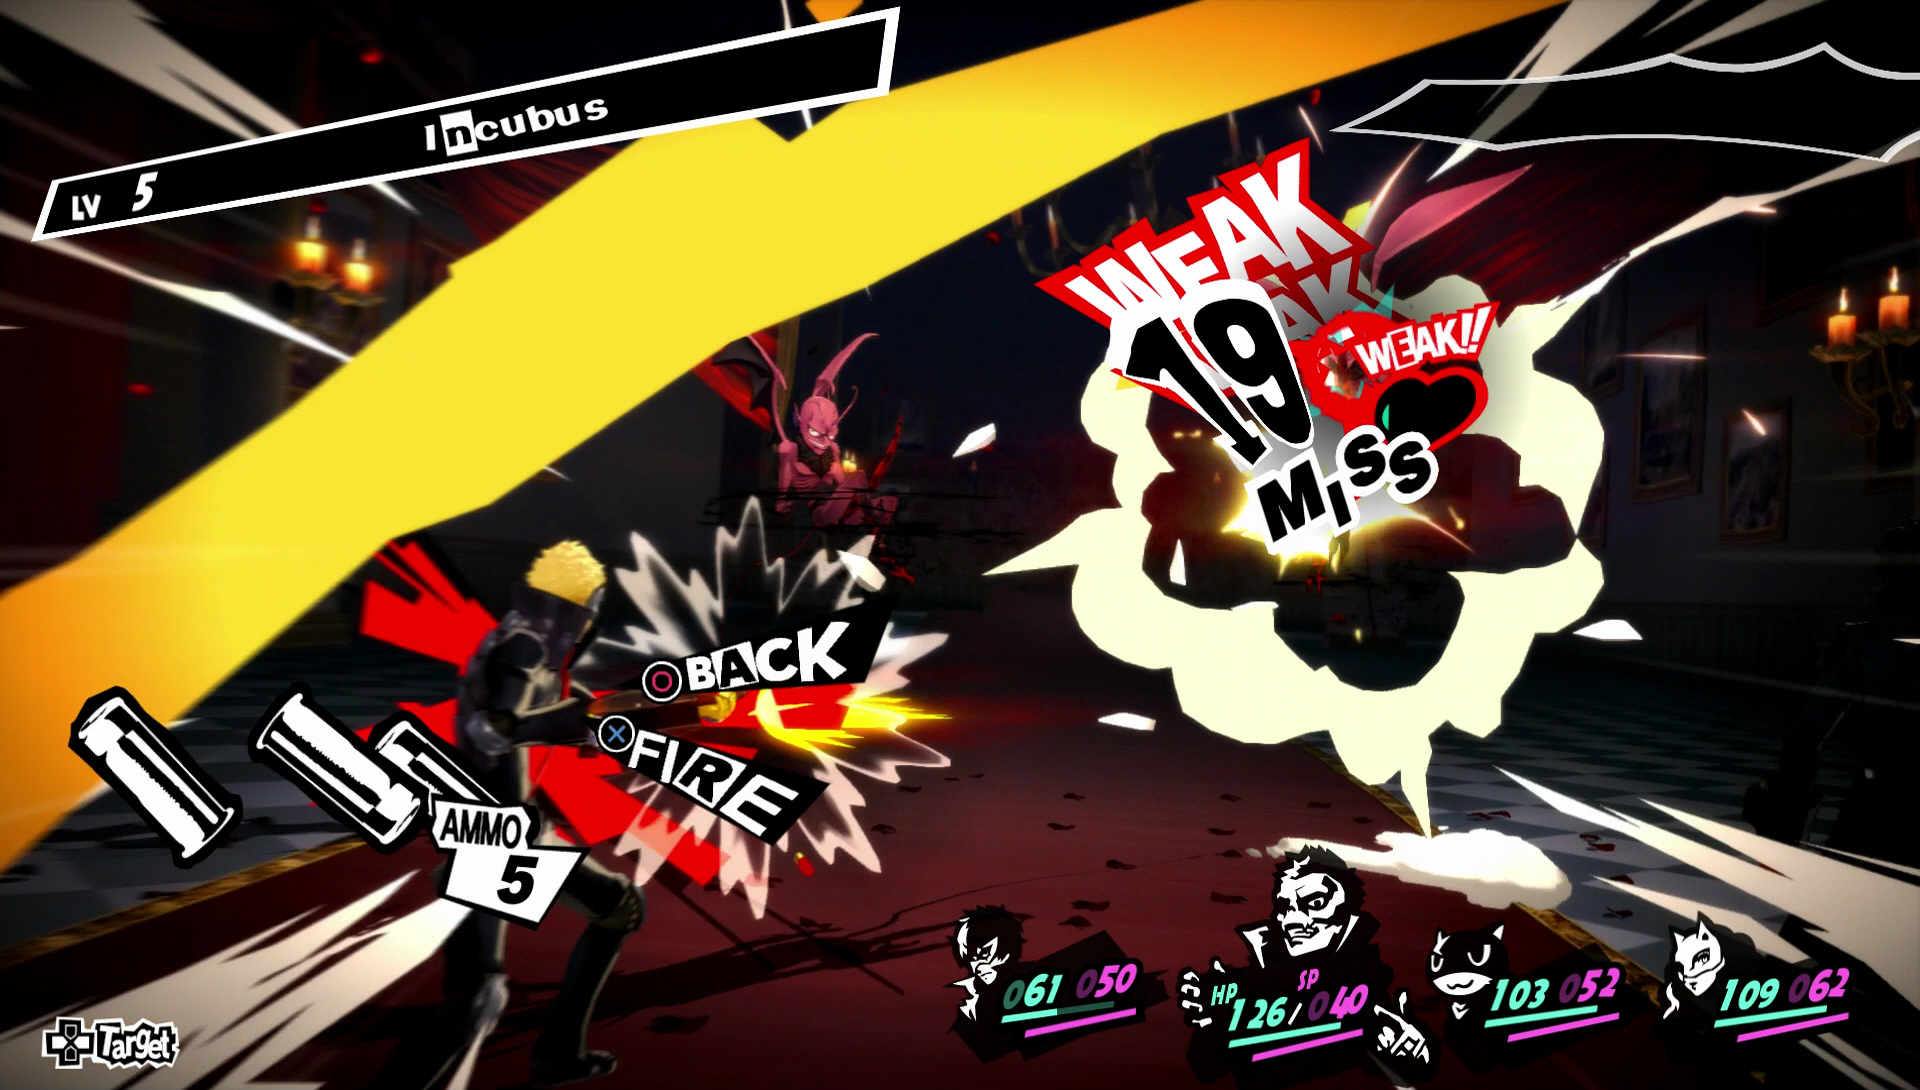 Screenshot from Persona 5. On the right side, Ryuji, blonde male, is shooting a gun towards winged creatures. The word Weak is captioned in red in the image.